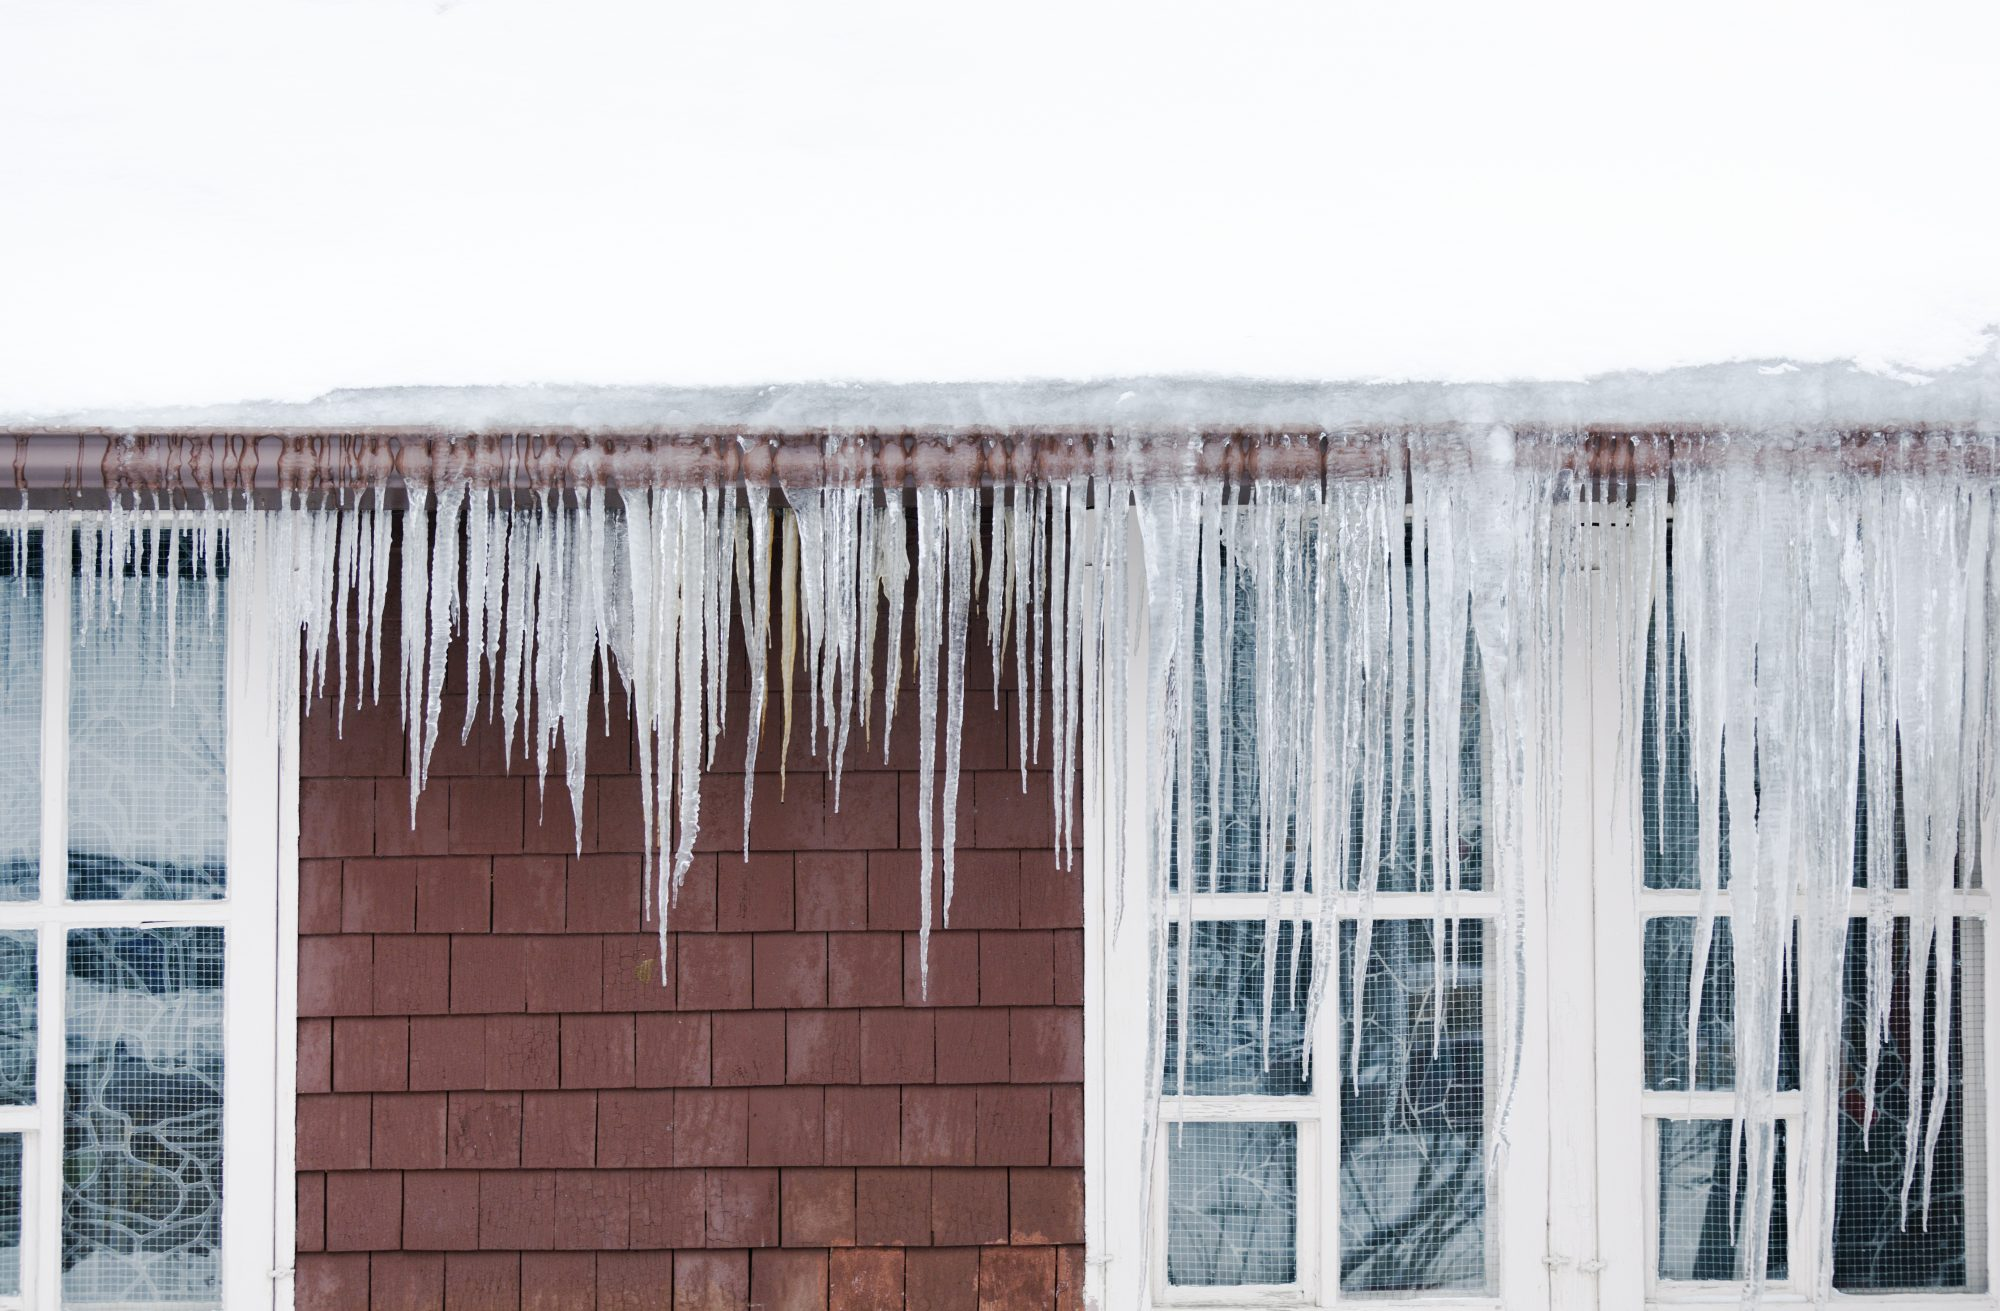 Ice Dams on Rooftop